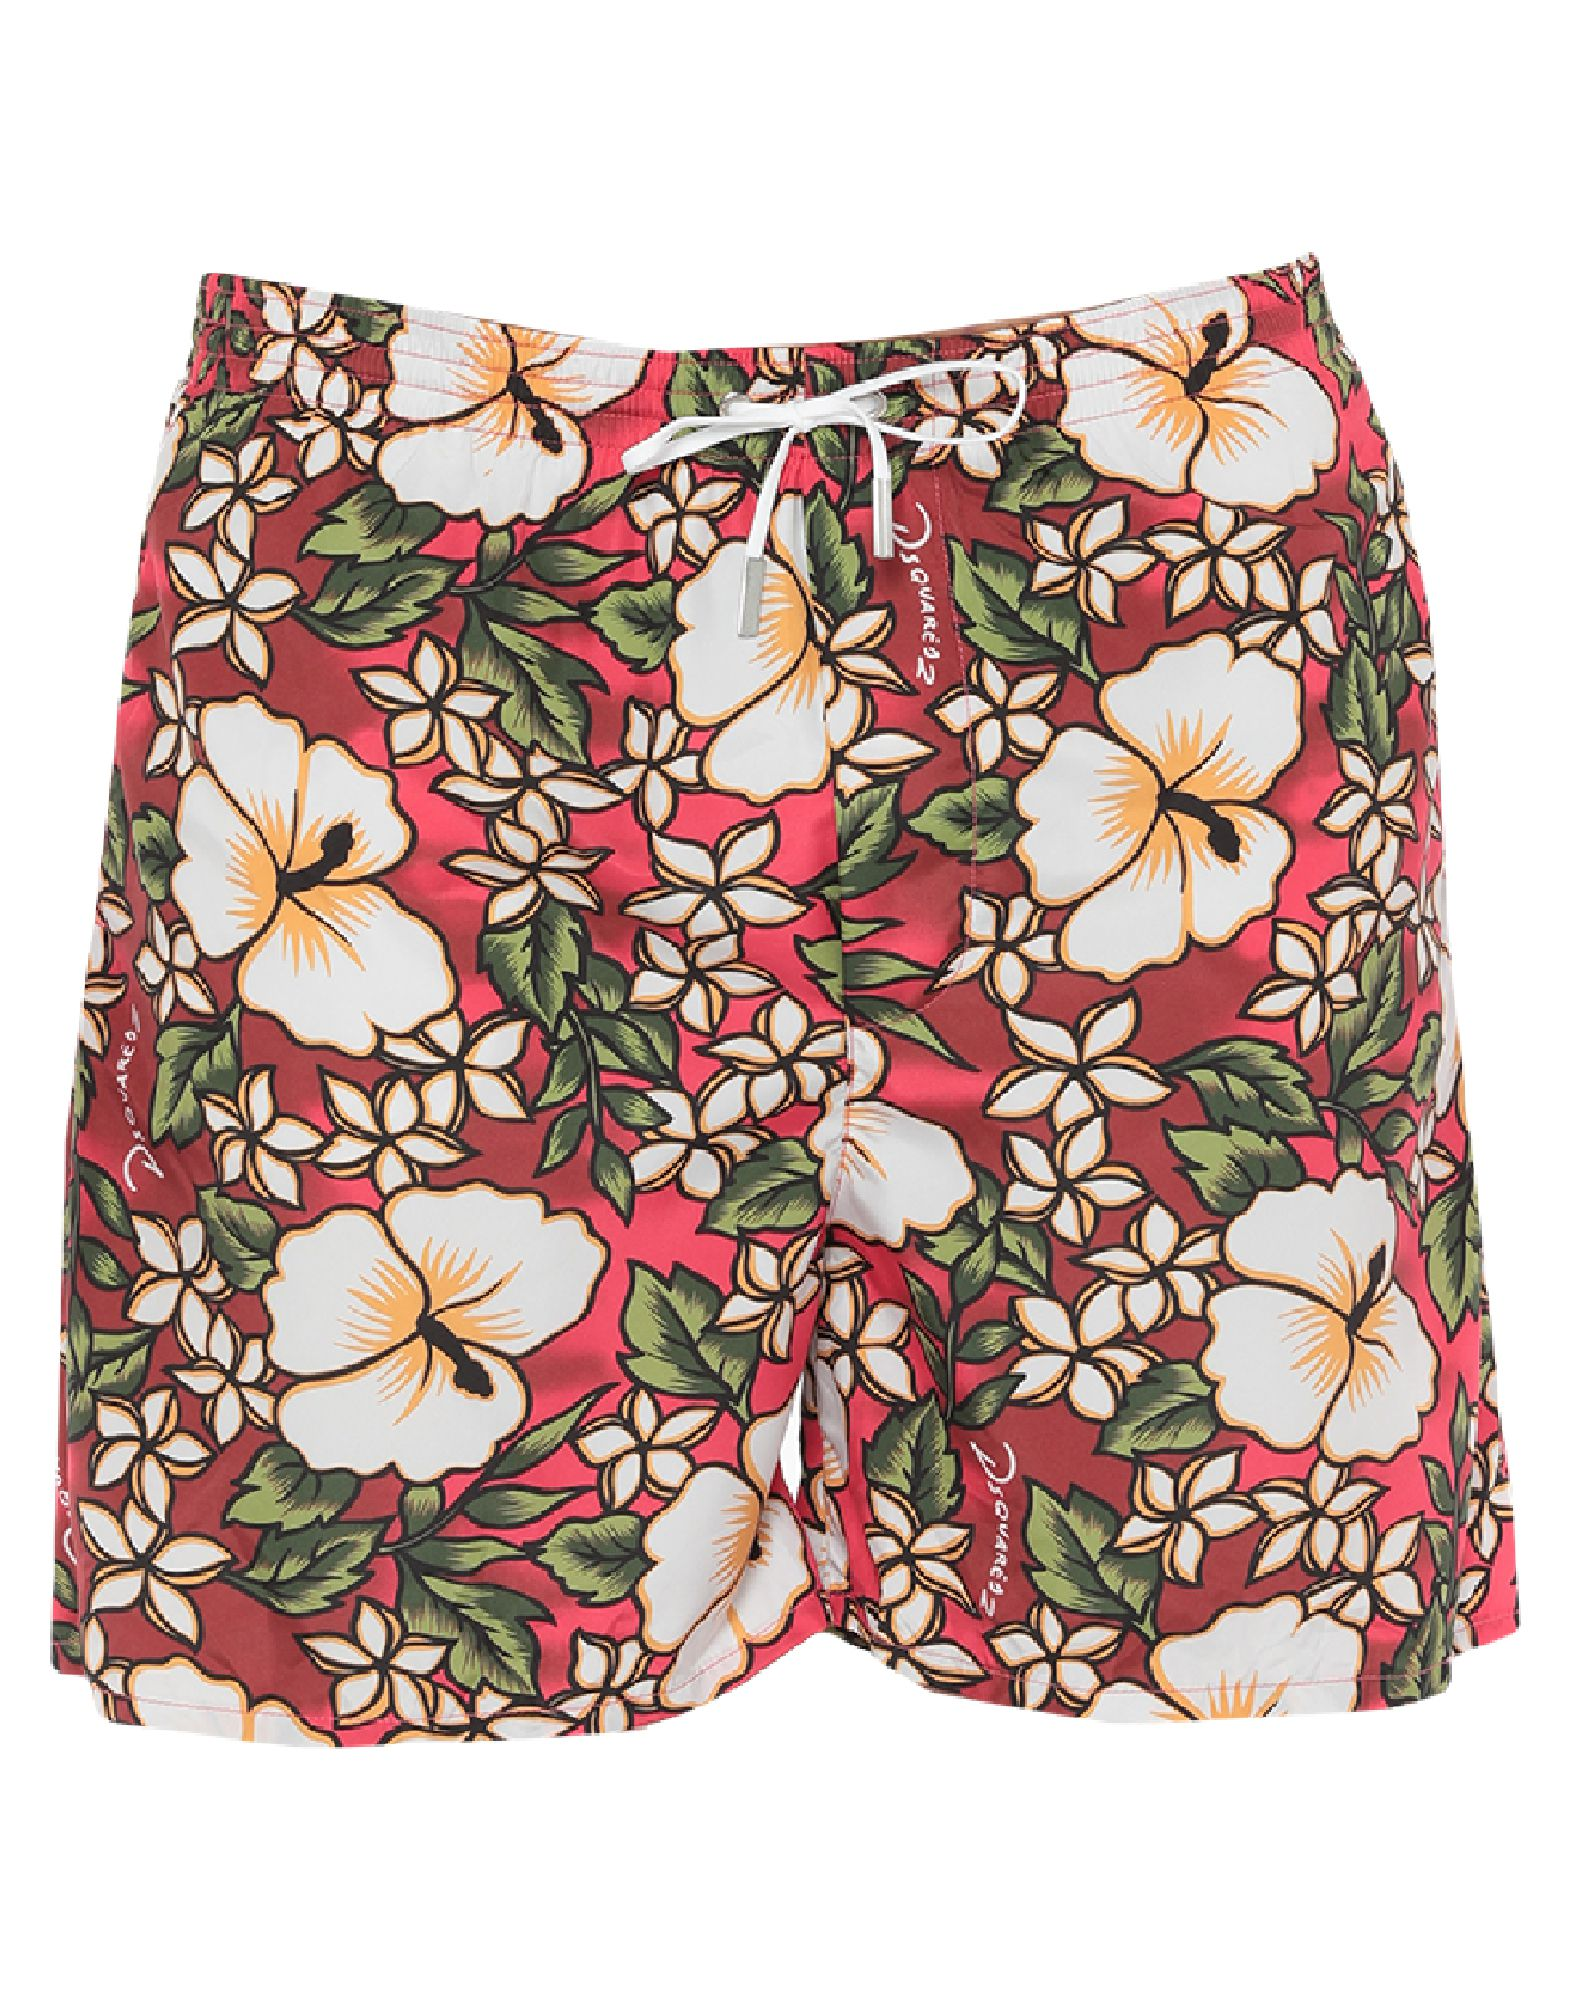 DSQUARED2 Beach shorts and pants. techno fabric, logo, floral design, drawstring closure, multipockets, internal slip. 100% Polyester